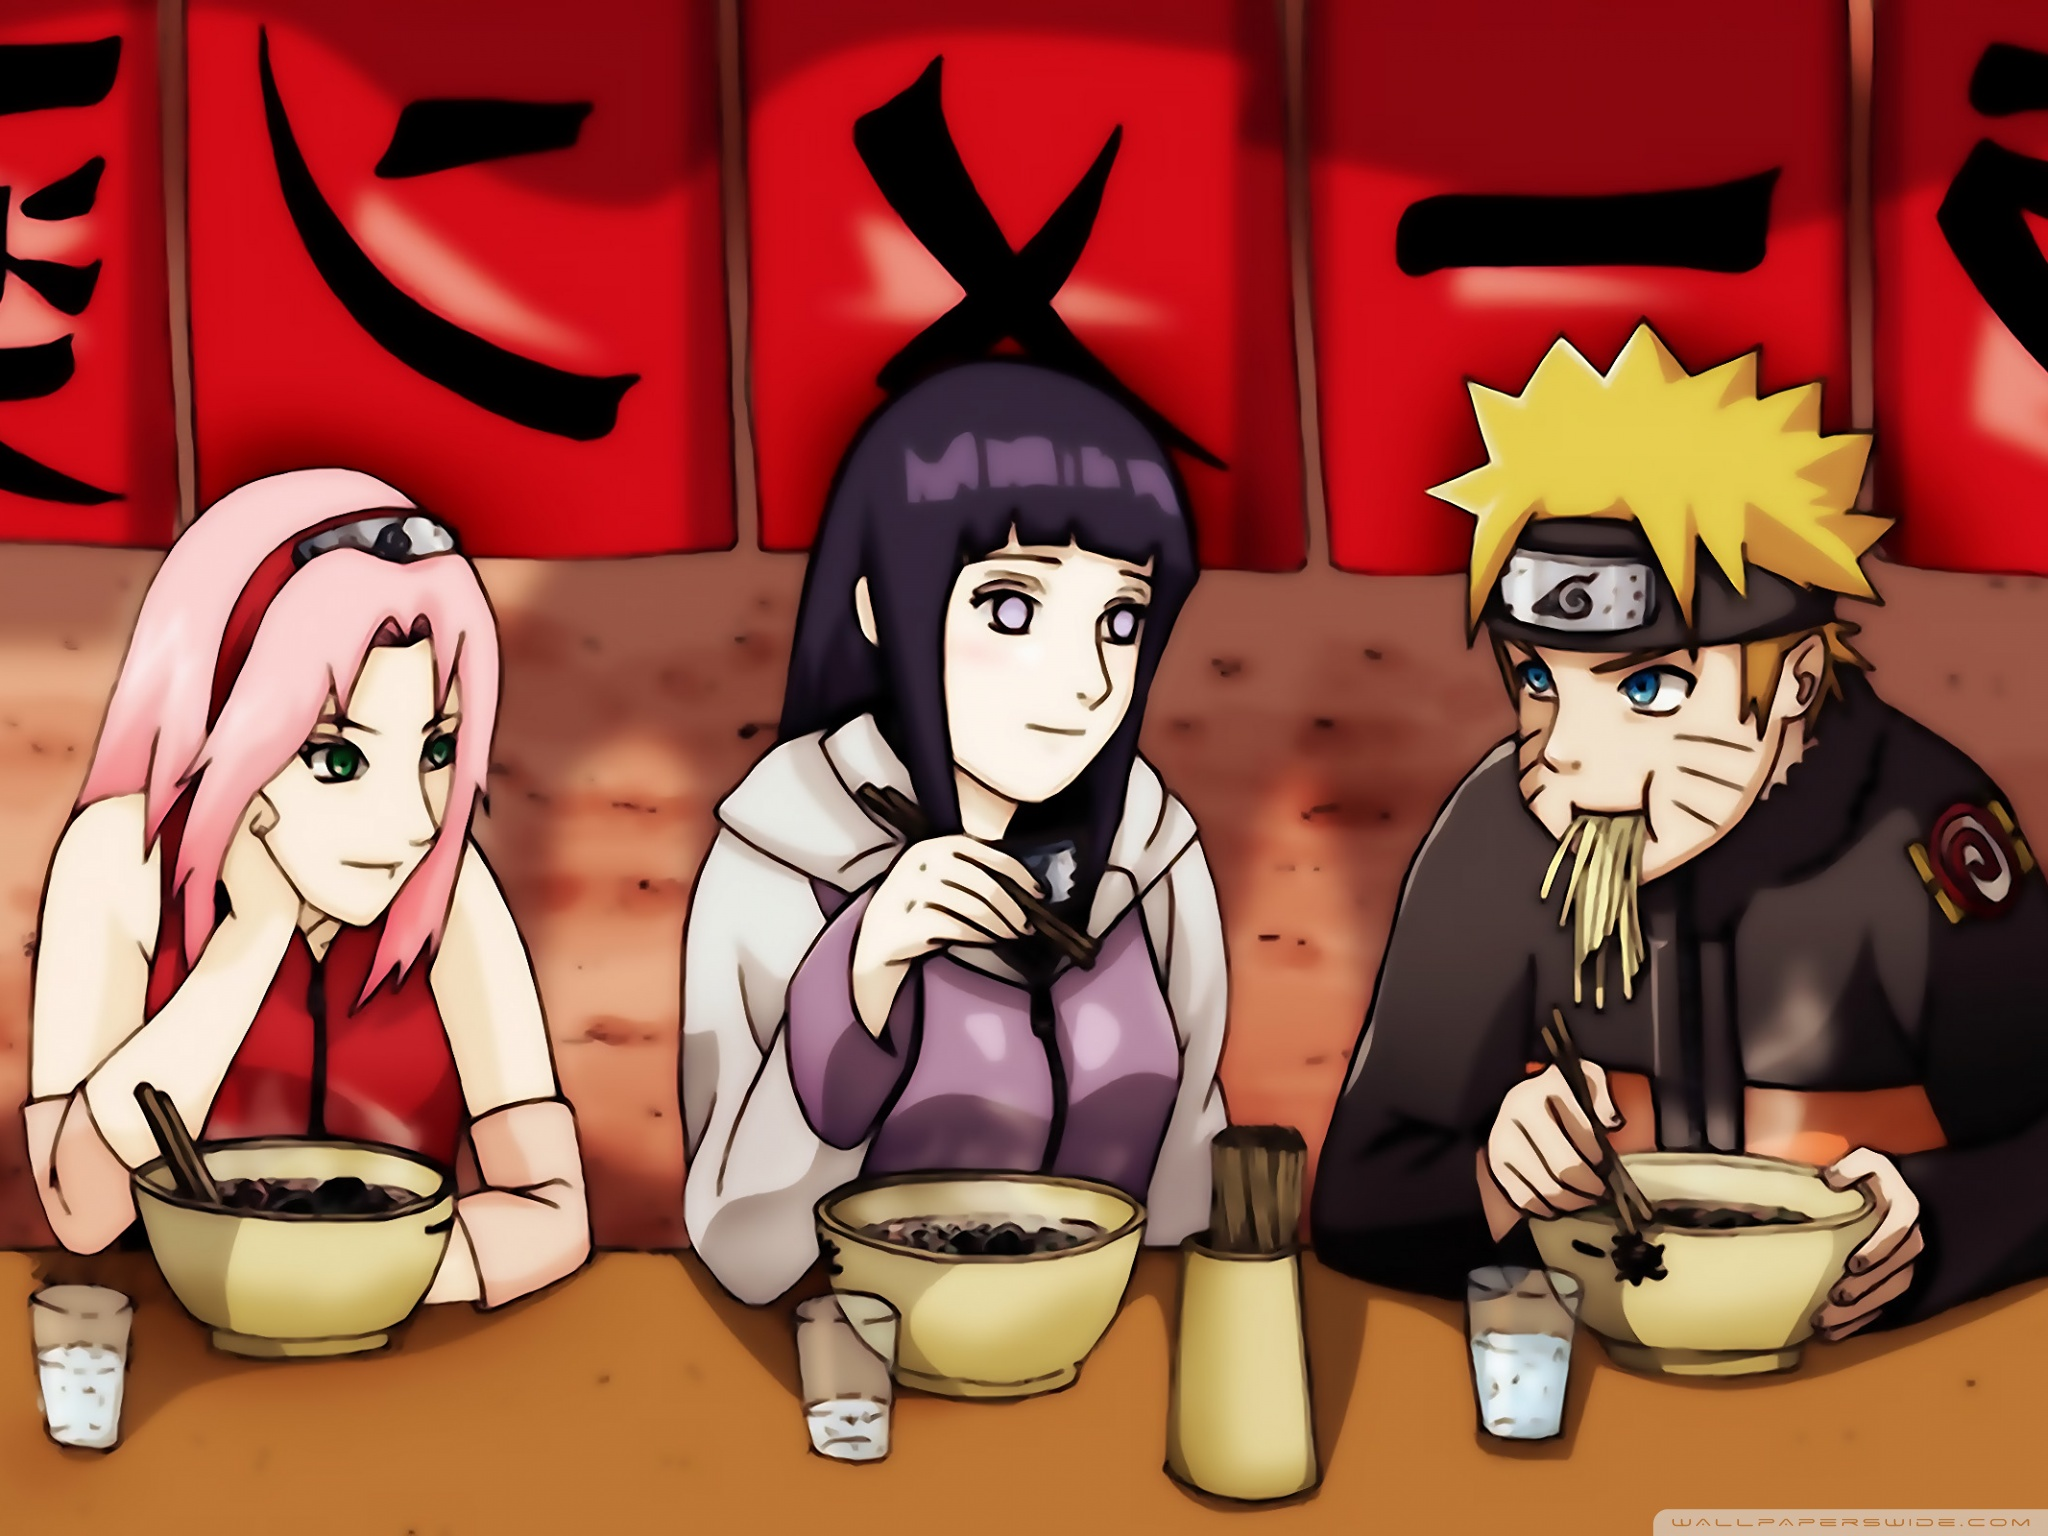 Standard - Hinata And Sakura Love Naruto (#446057) - HD Wallpaper &  Backgrounds Download